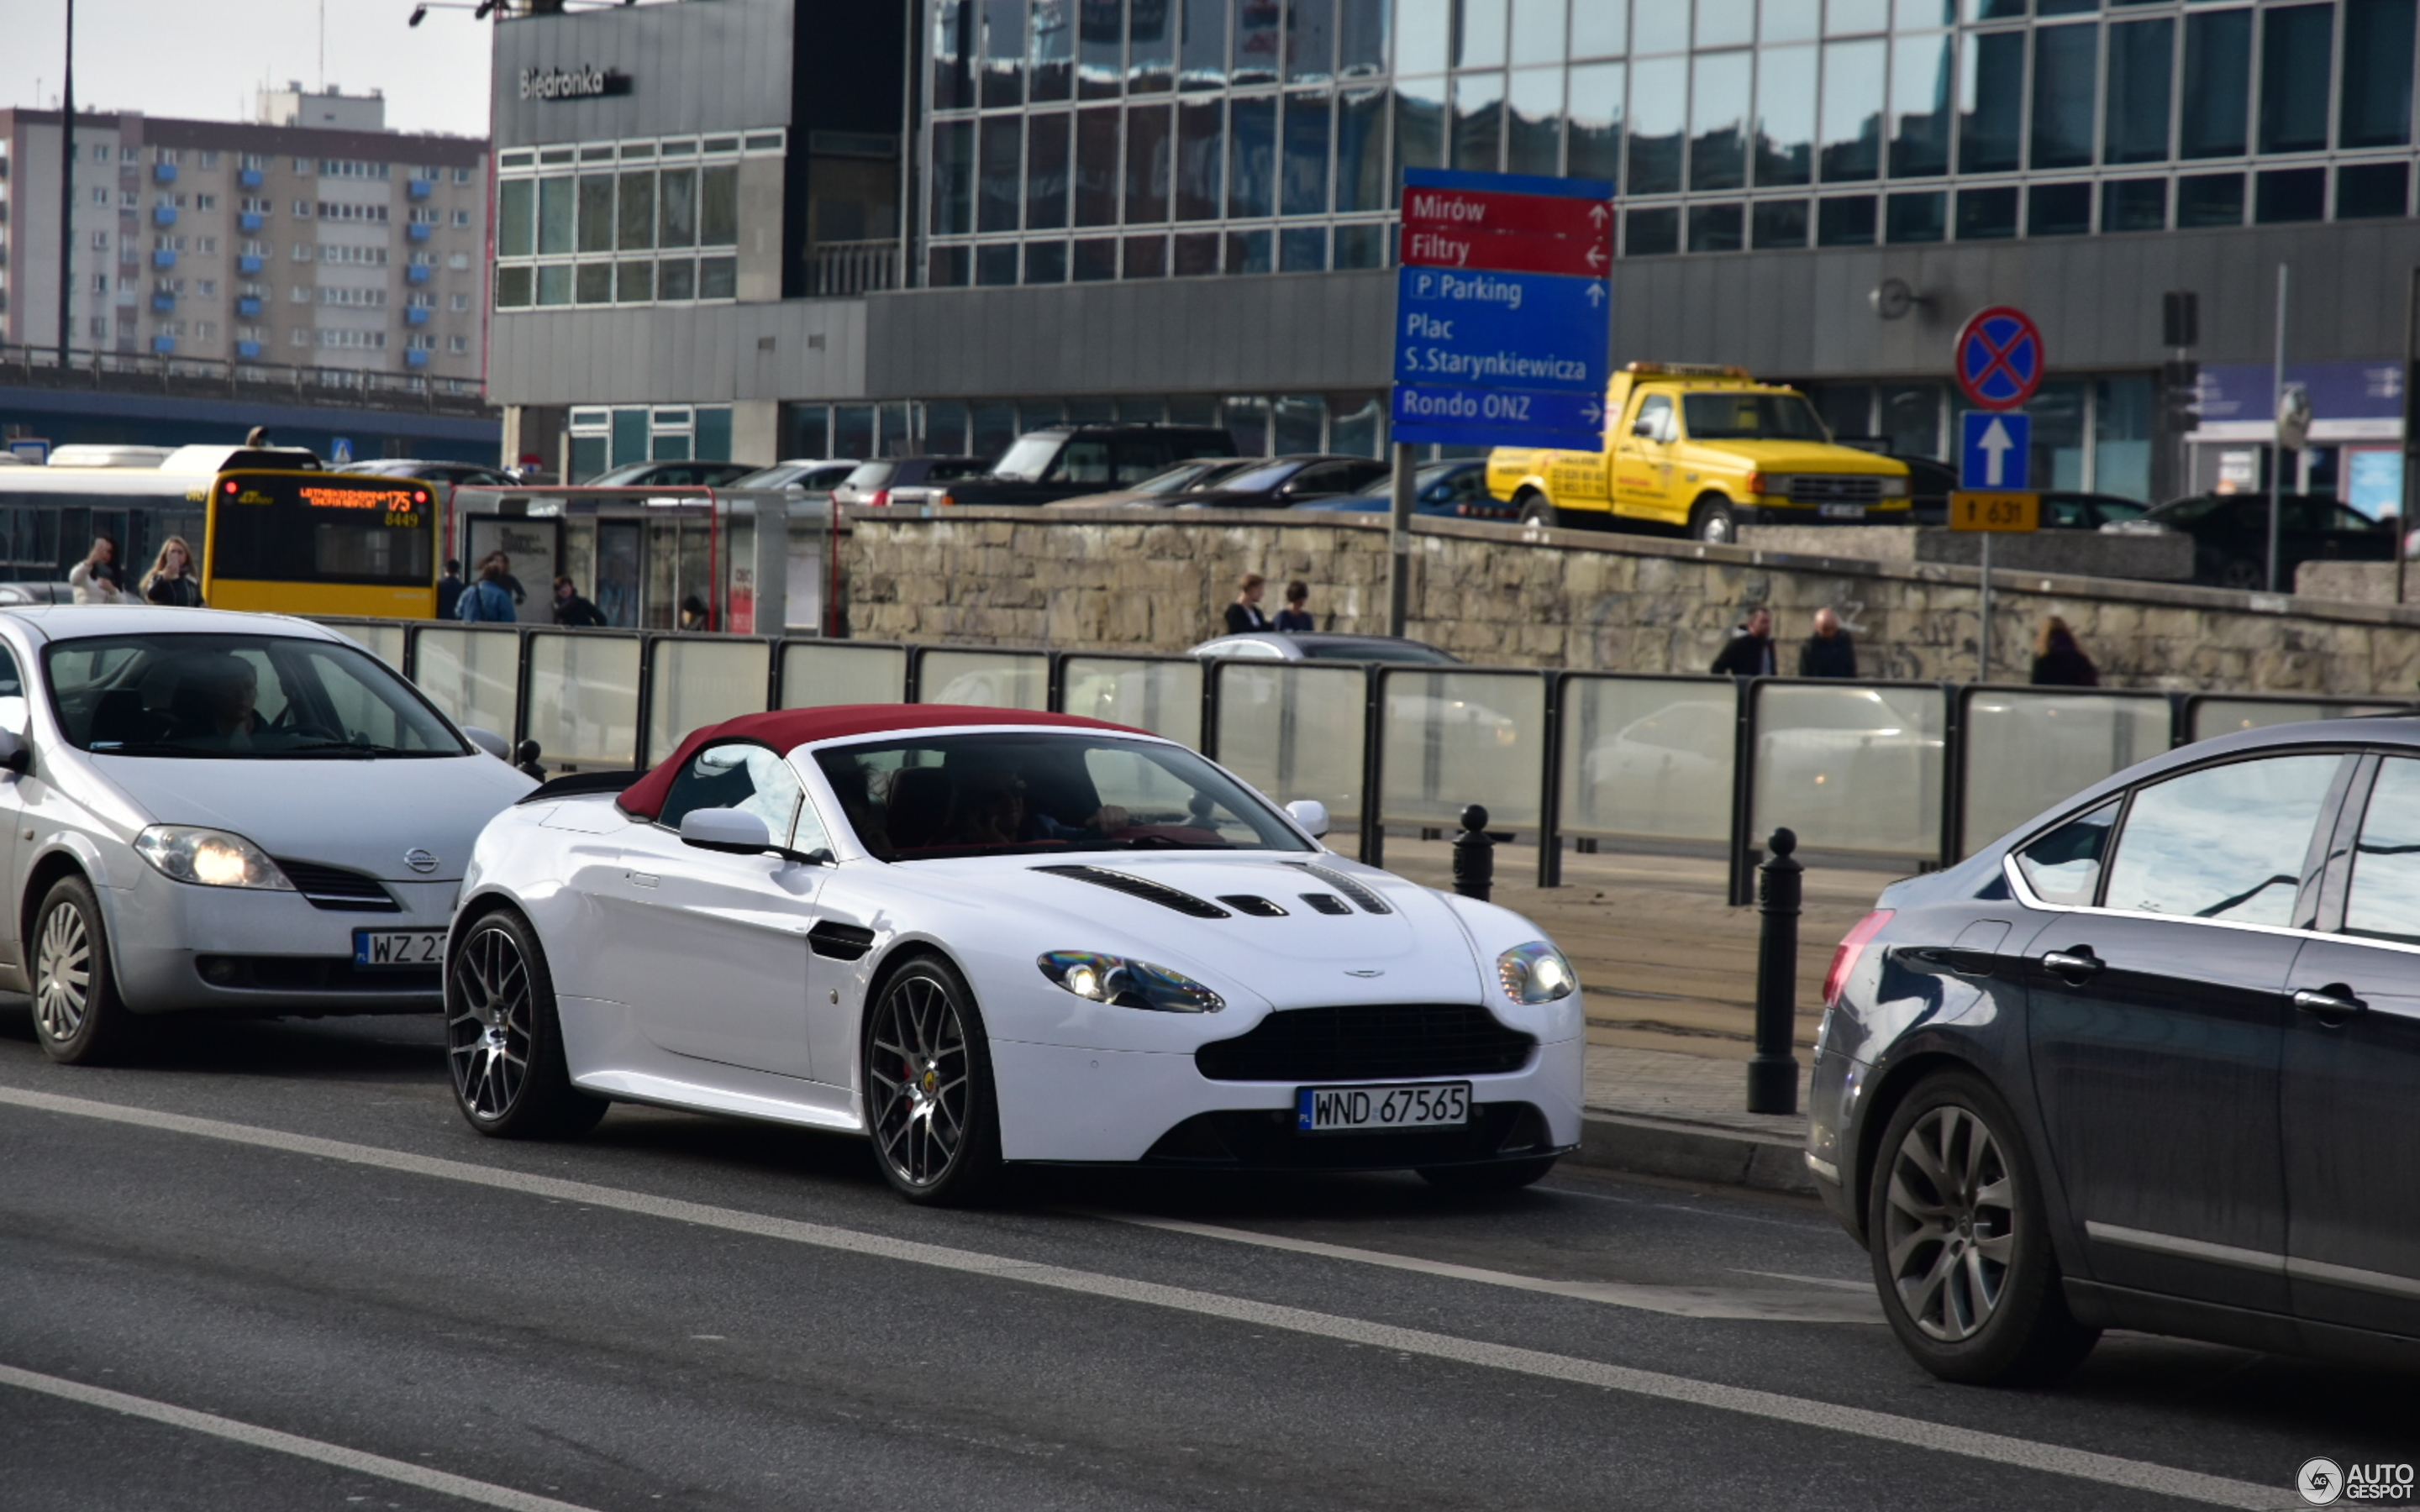 Aston Martin V12 Vantage S Roadster 10 March 2018 Autogespot